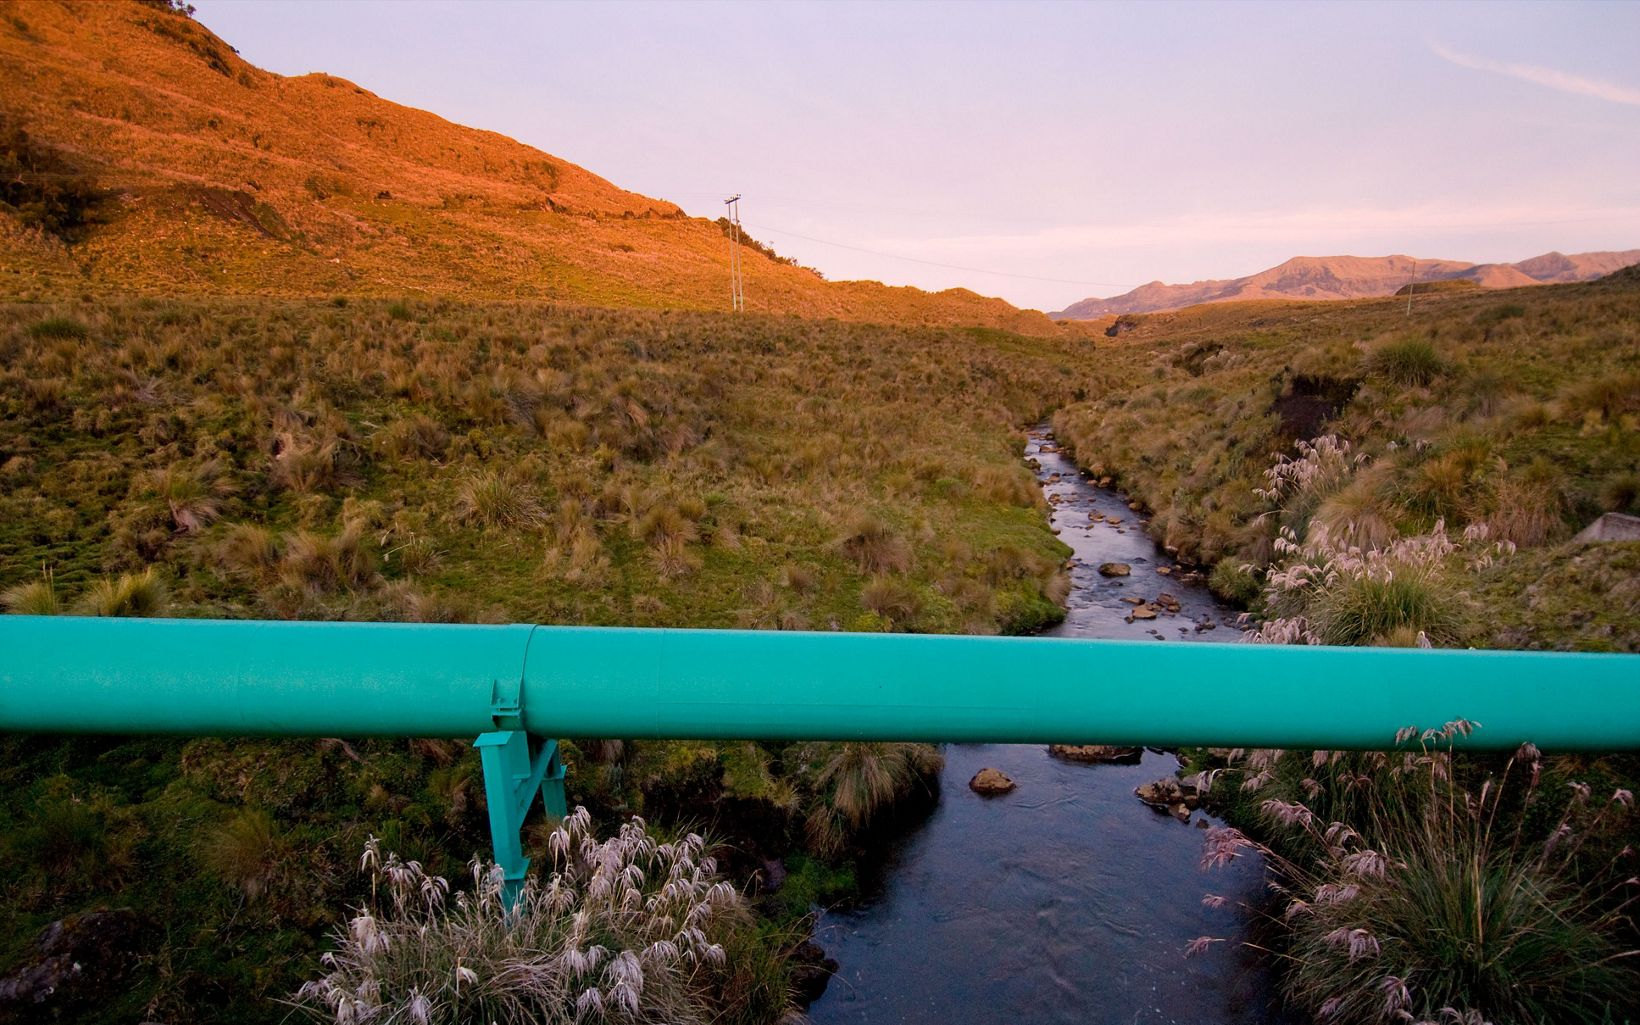 The Salve Paccha auquaduct (green pipe) transports water from Cayambe Coca to Quito.